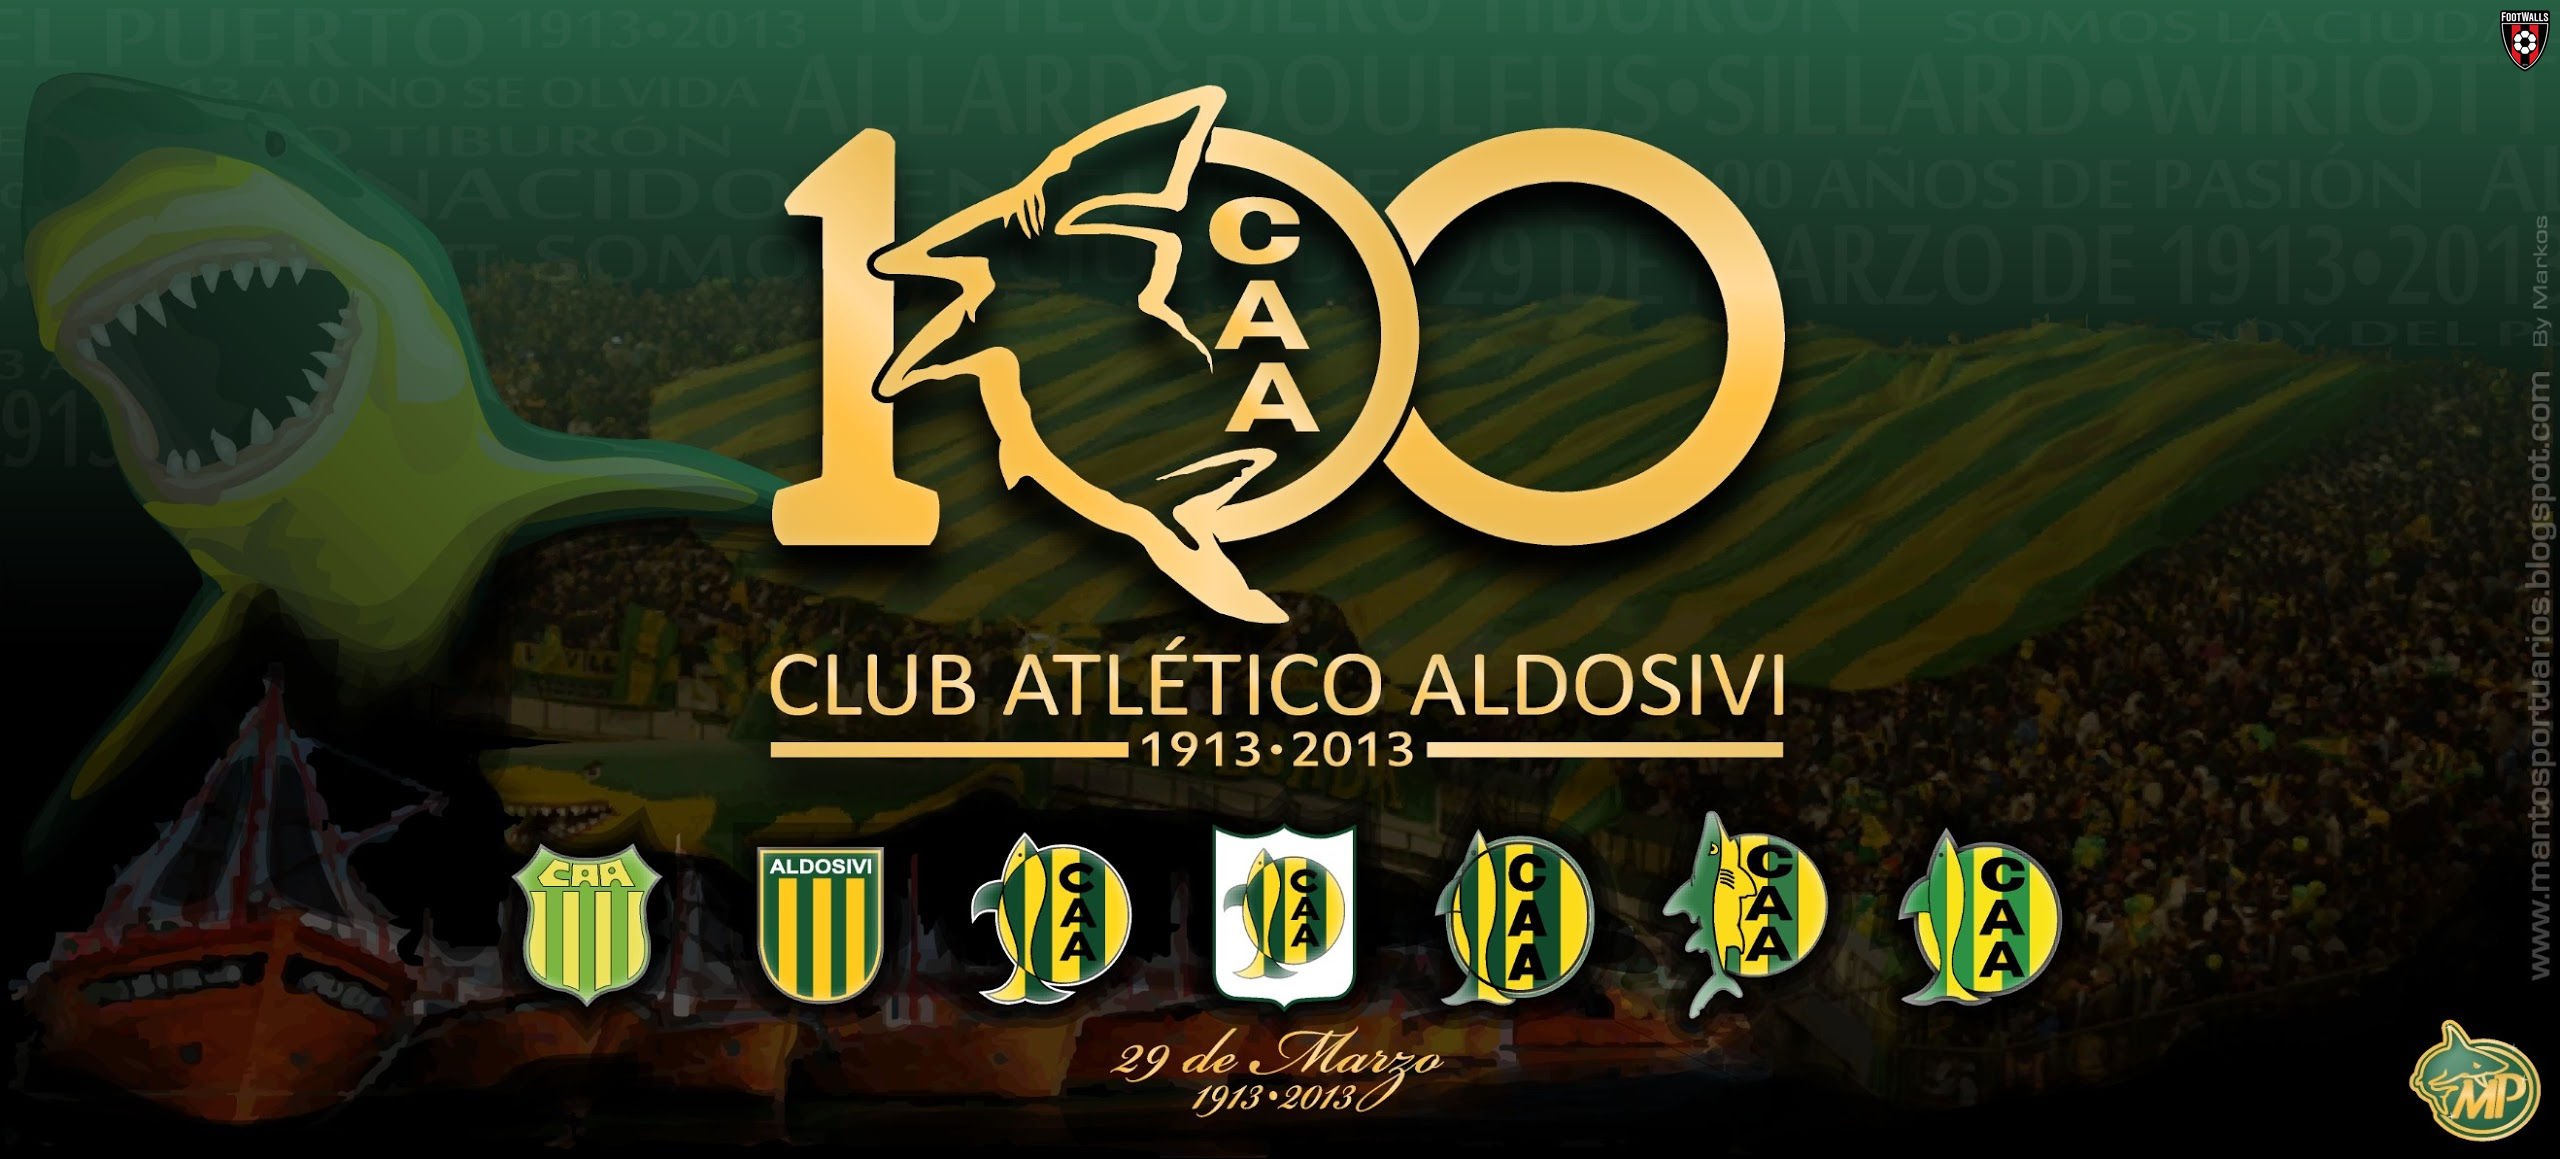 Aldosivi: Aldosivi Wallpaper #1